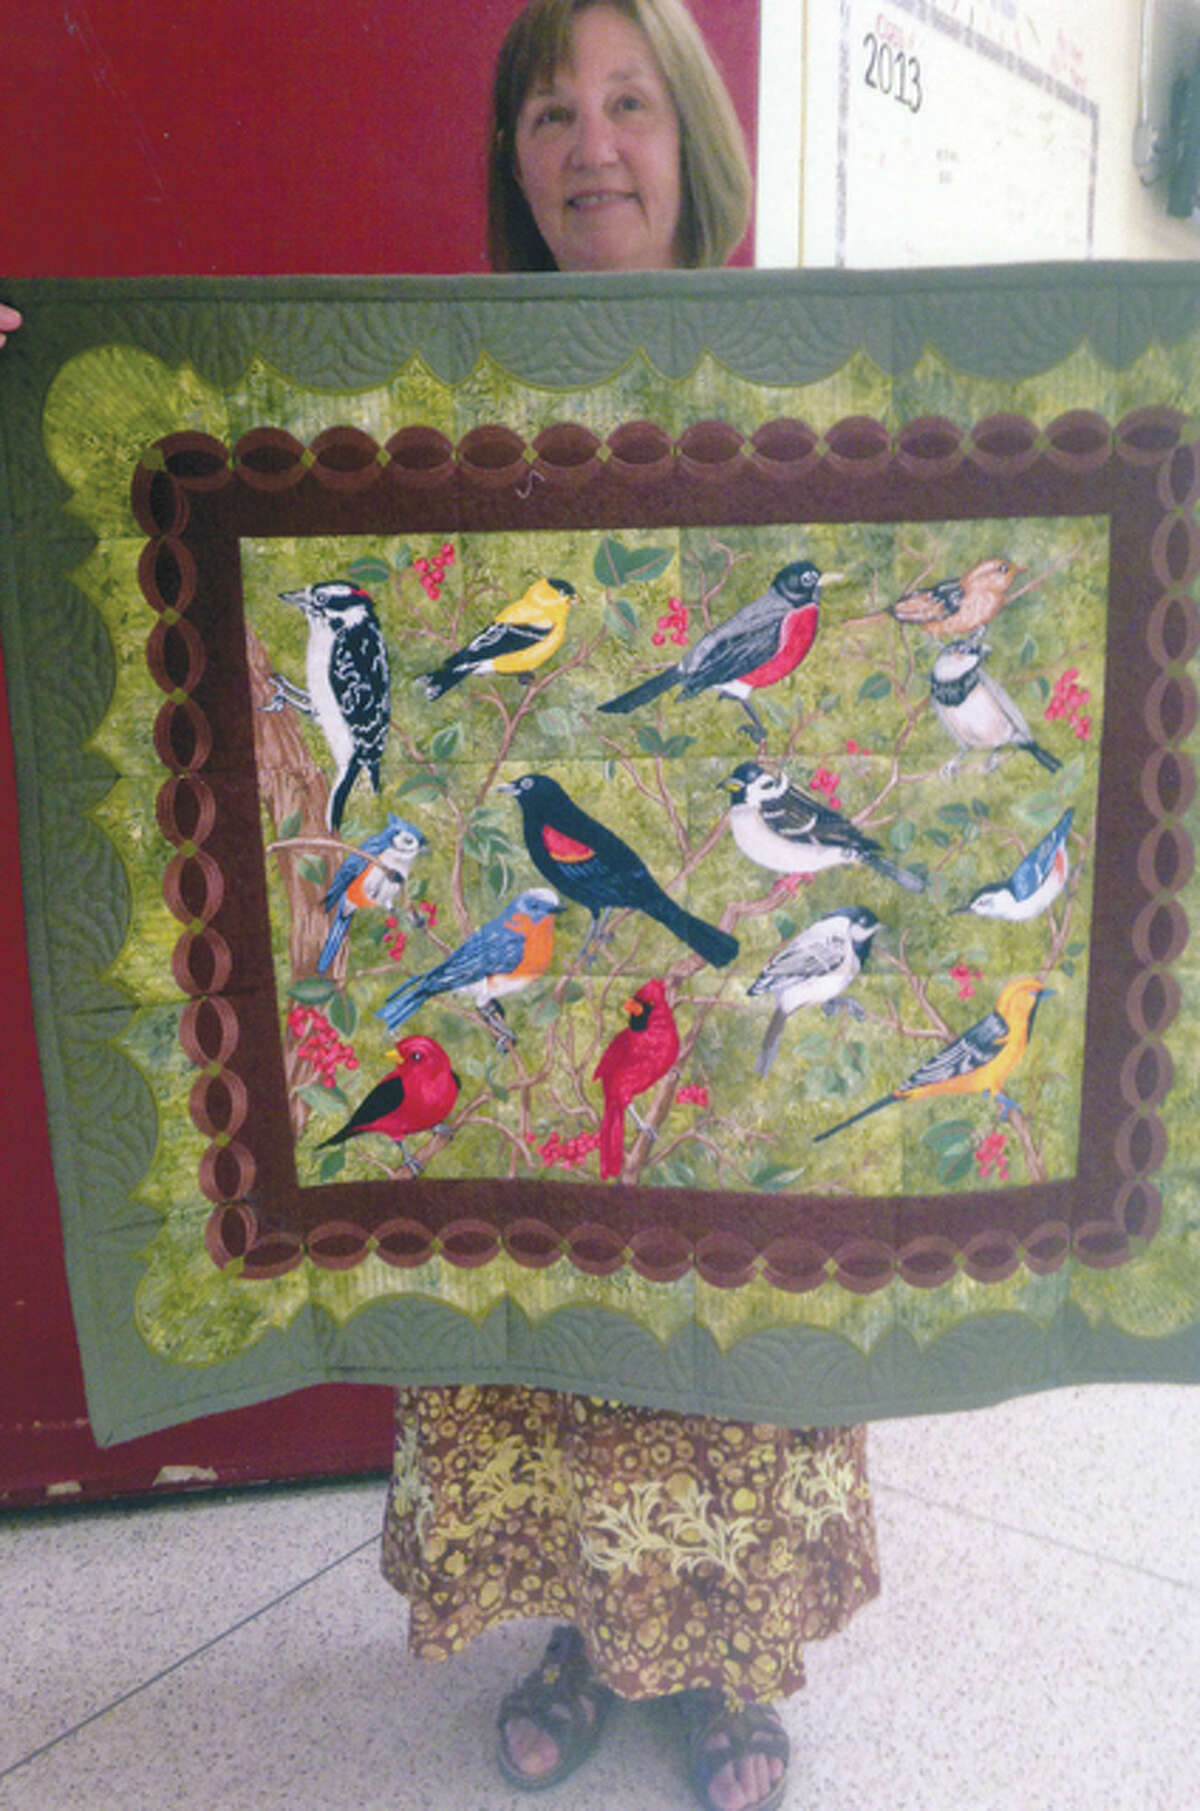 """Photo provided Donna Fezler of Jacksonville received the Viewers' Choice Award for her wall hanging titled """"Birds"""" during this year's River Country Quilt Show, which took place in July at Jacksonville High School. Her wall hanging will be displayed during the 2016 show."""